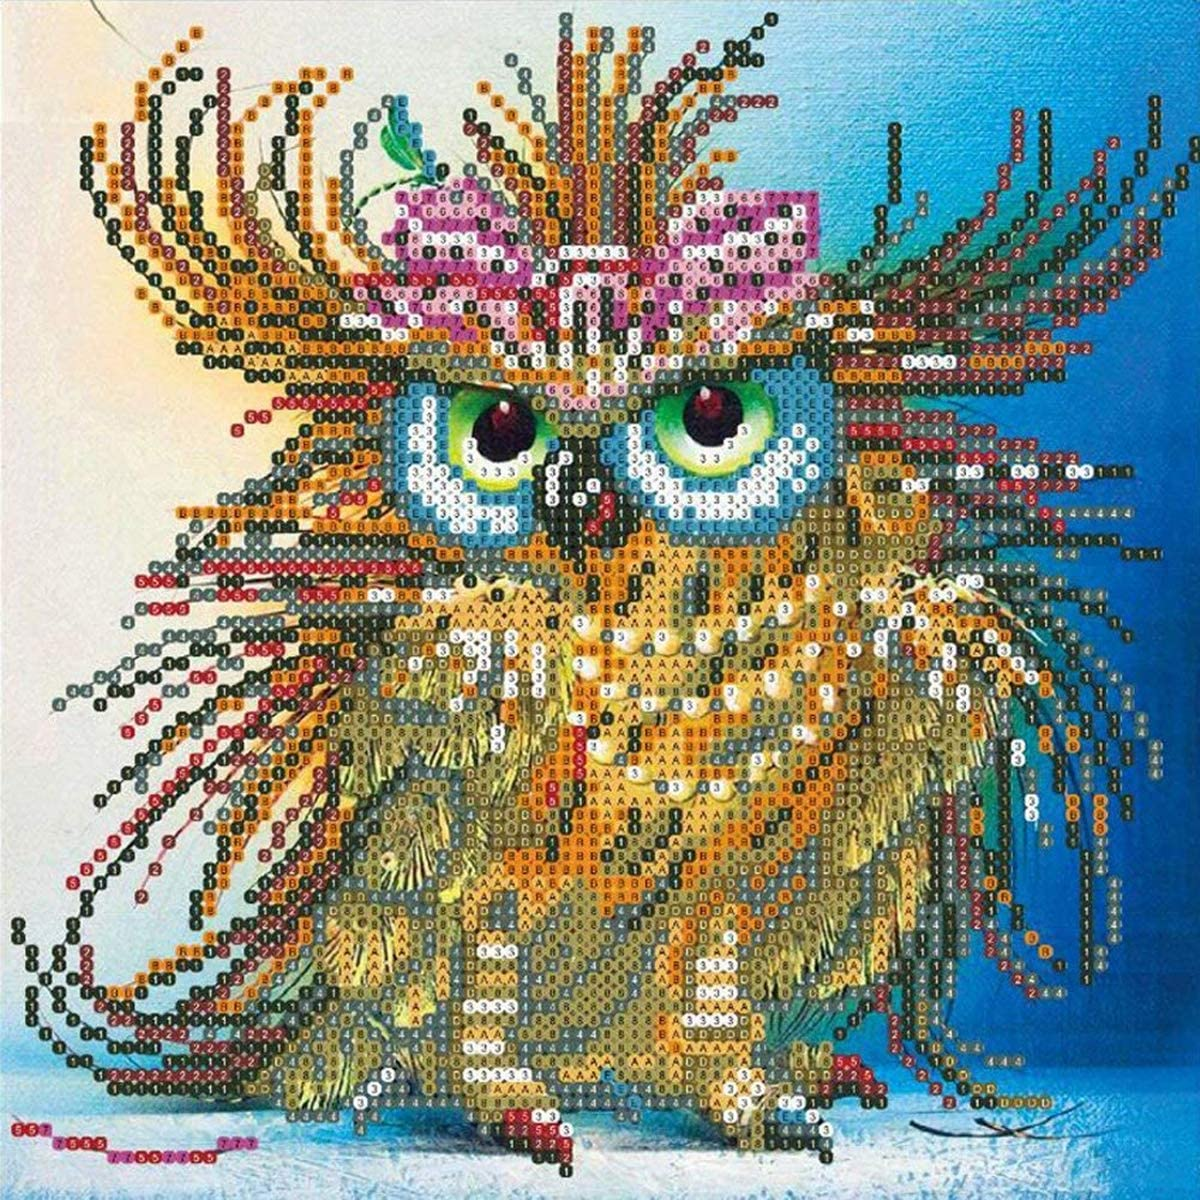 Round Diamond Lovely Owl Embroidery Rhinestone Cross Stitch Arts Craft Supply for Home Wall Decor 11.8x11.8 inch DIY 5D Diamond Painting Kit